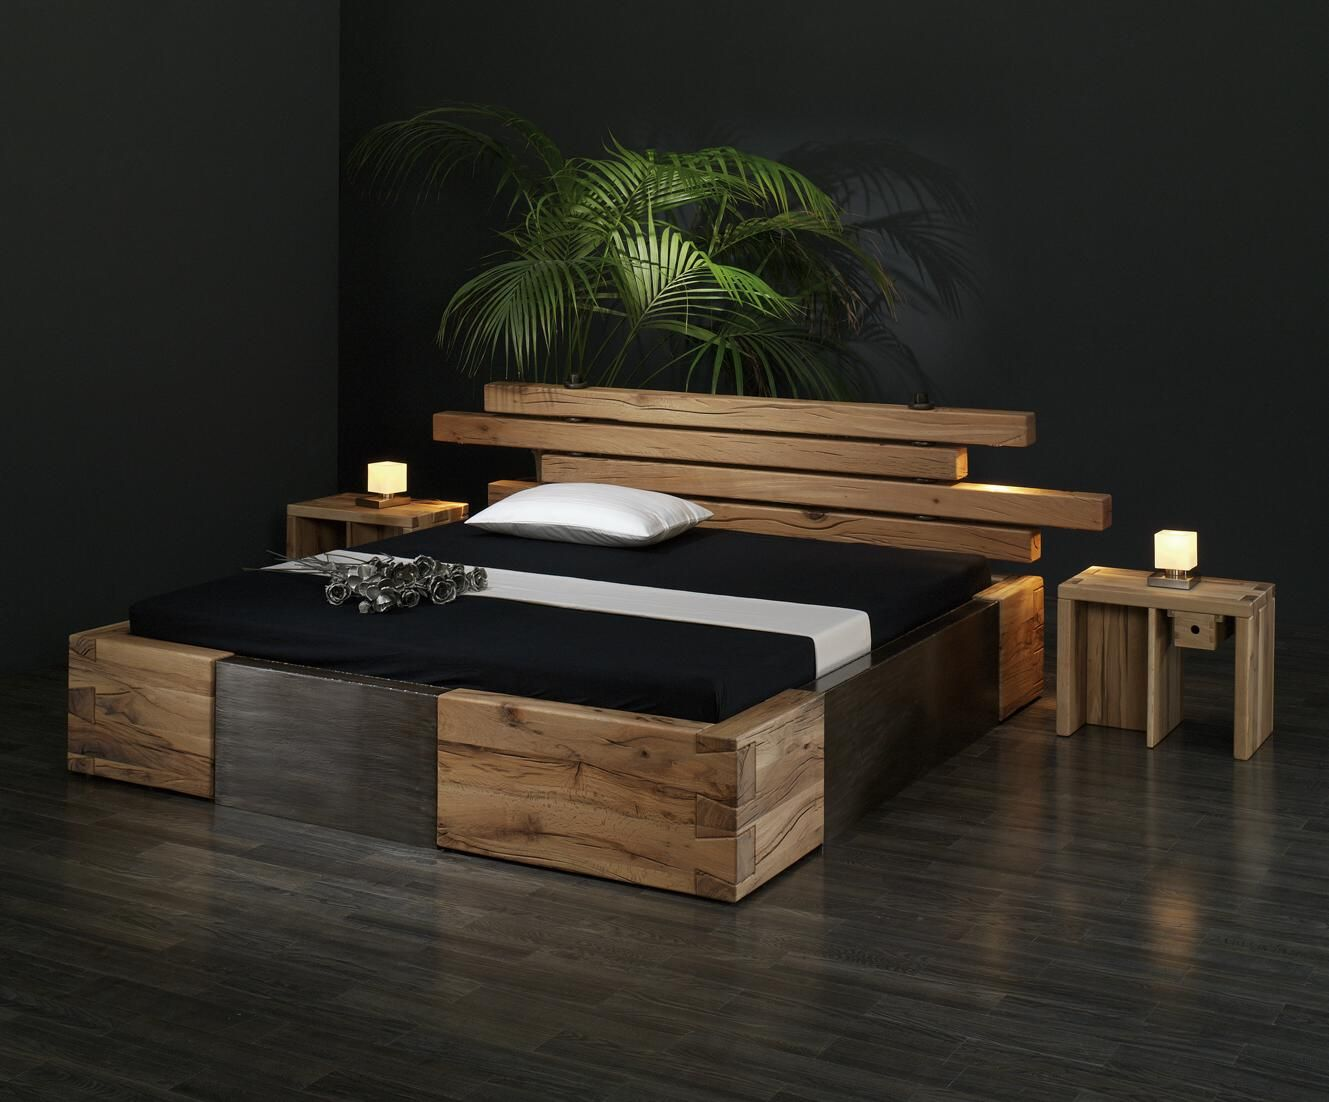 holz bett design - Google Search | Schlafzimmer | Pinterest | Bett ...